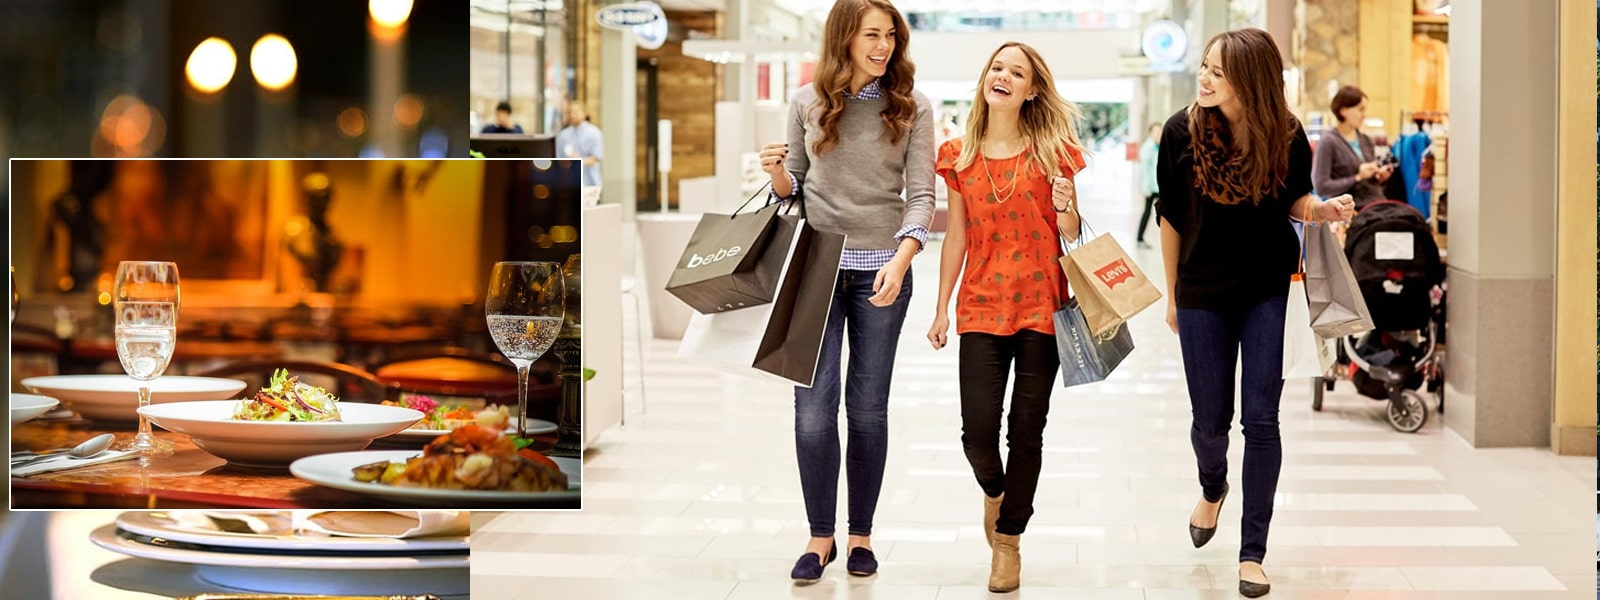 Daily Needs Shops for sale in Sohna Gurgaon